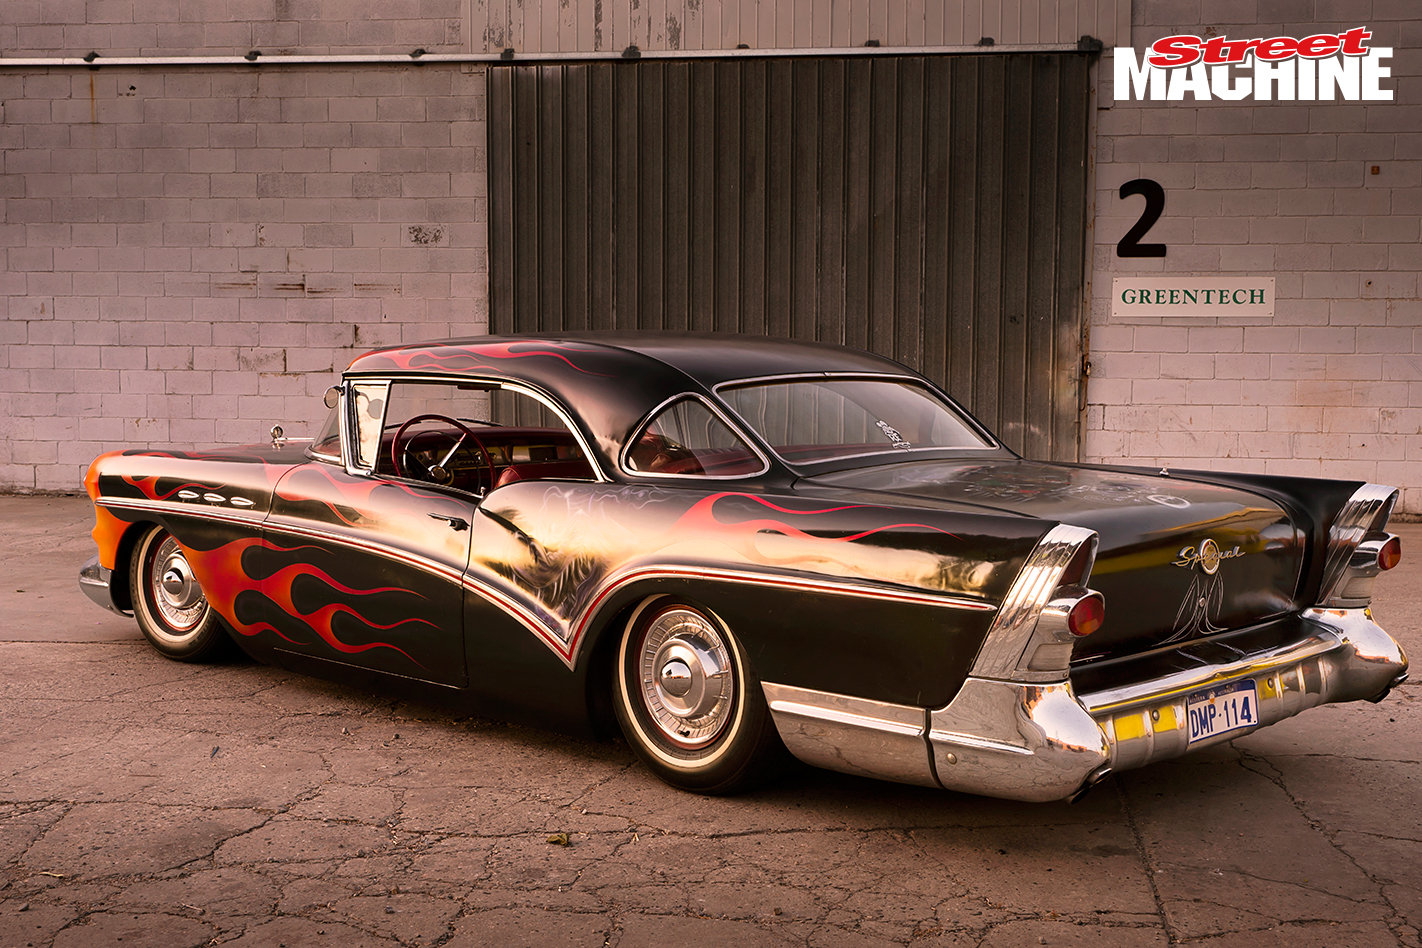 57 Buick Special Custom 2